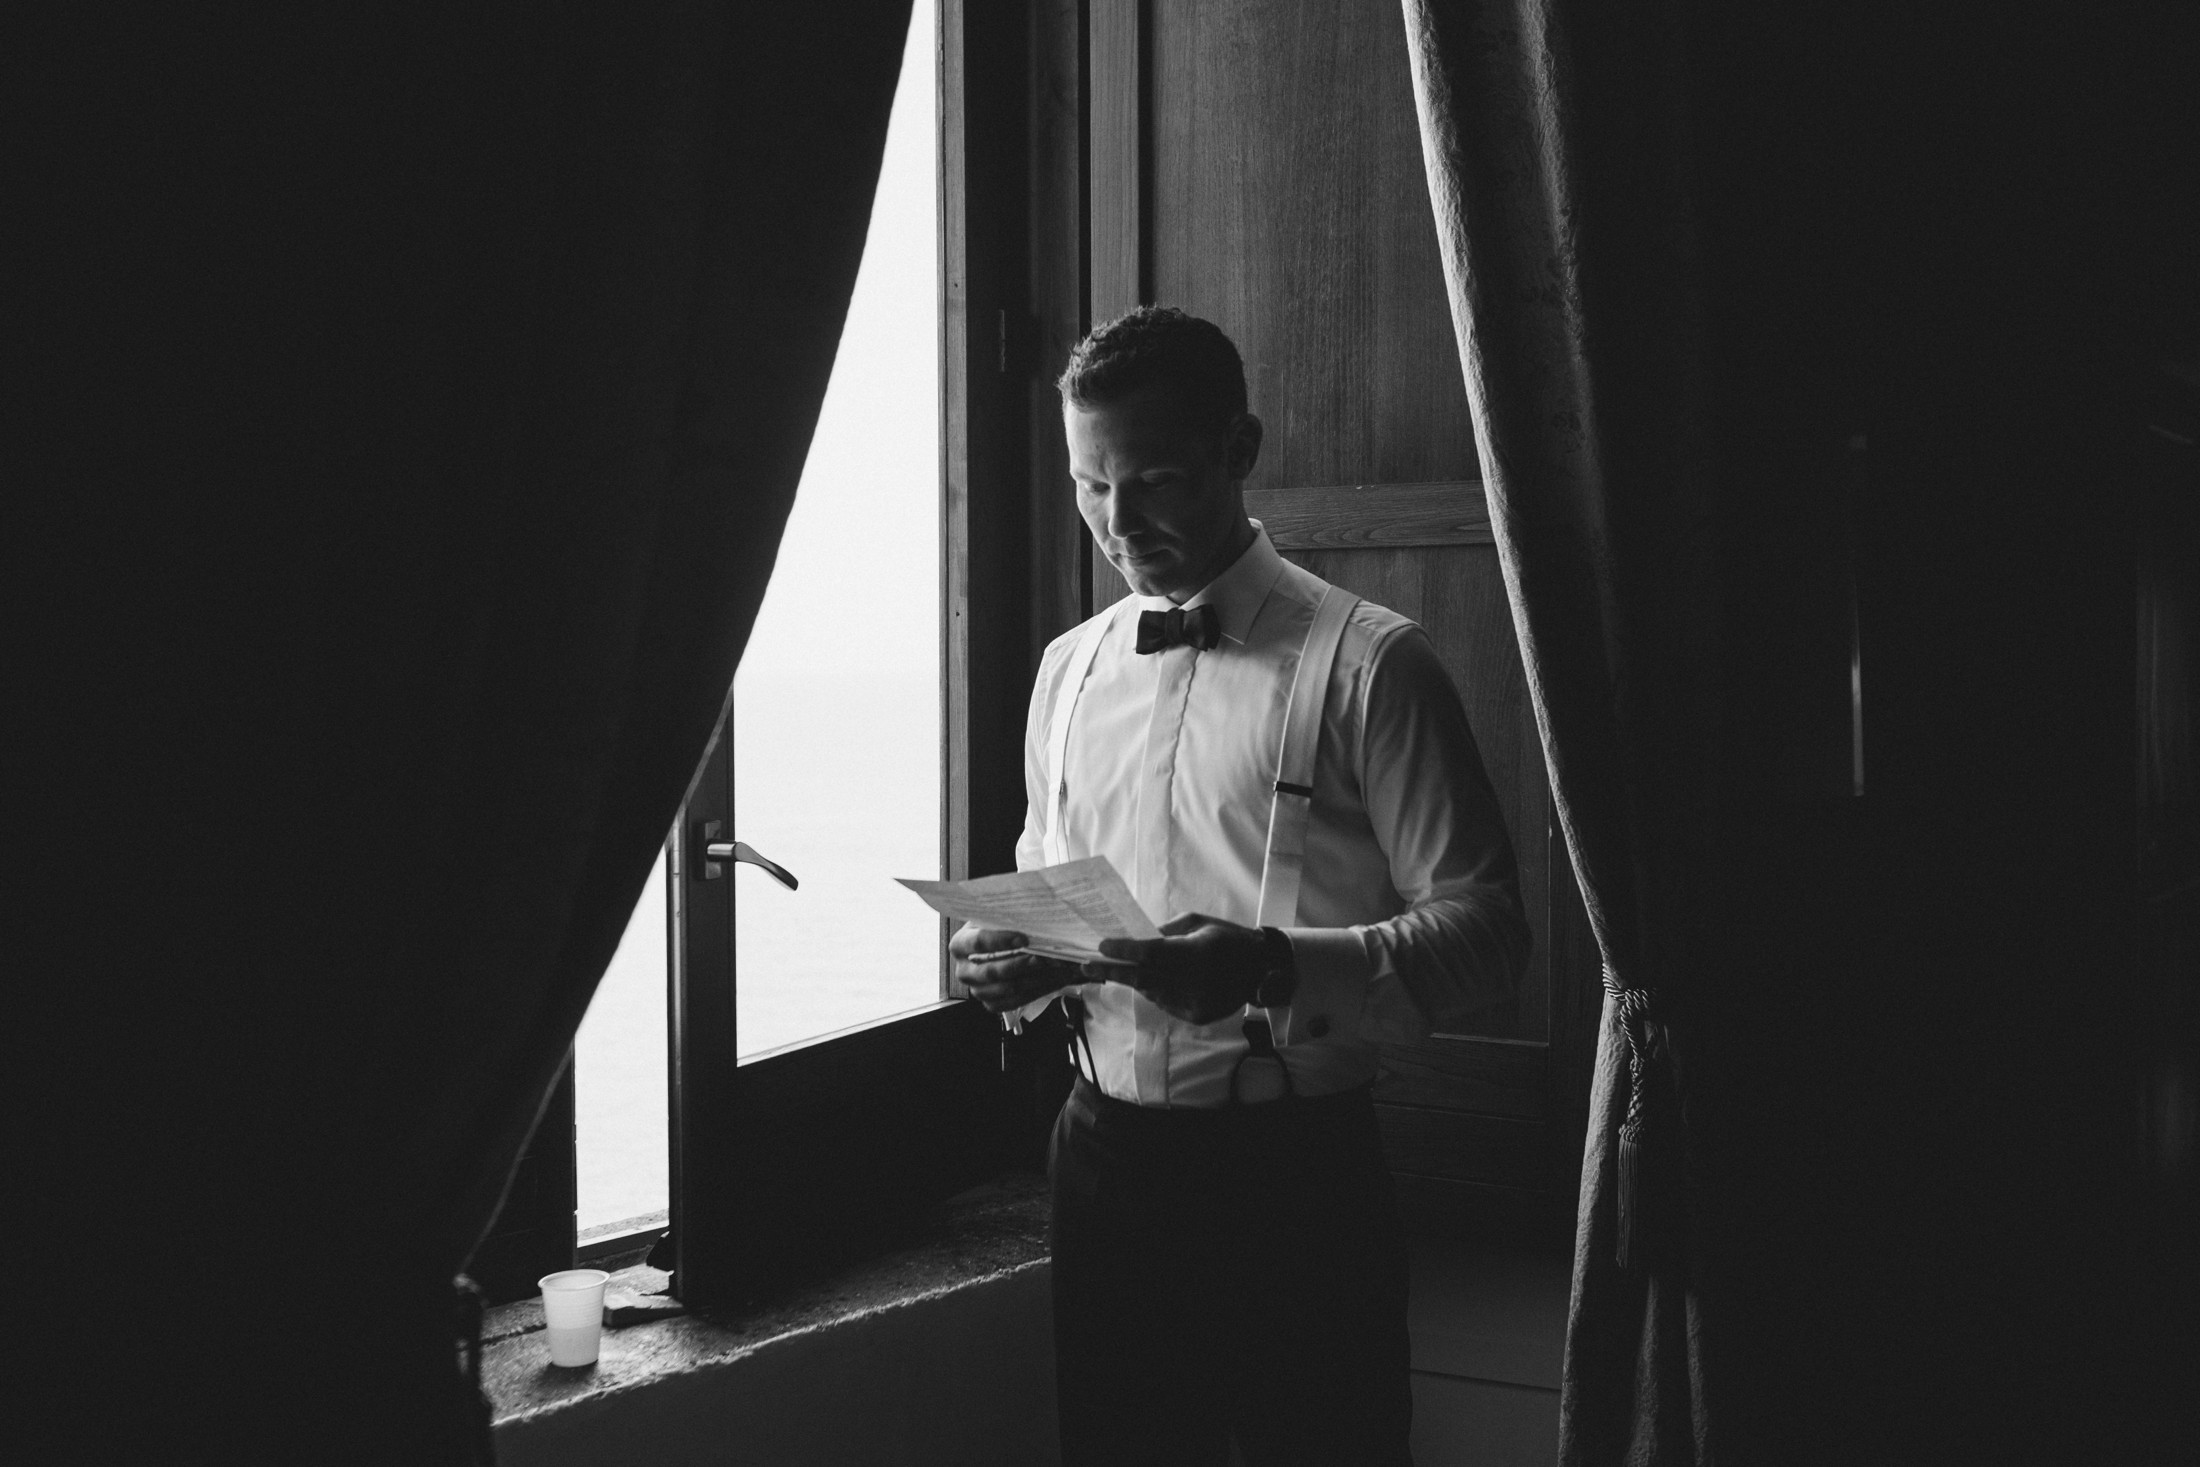 the groom reads his speech before leaving the room for the ceremony